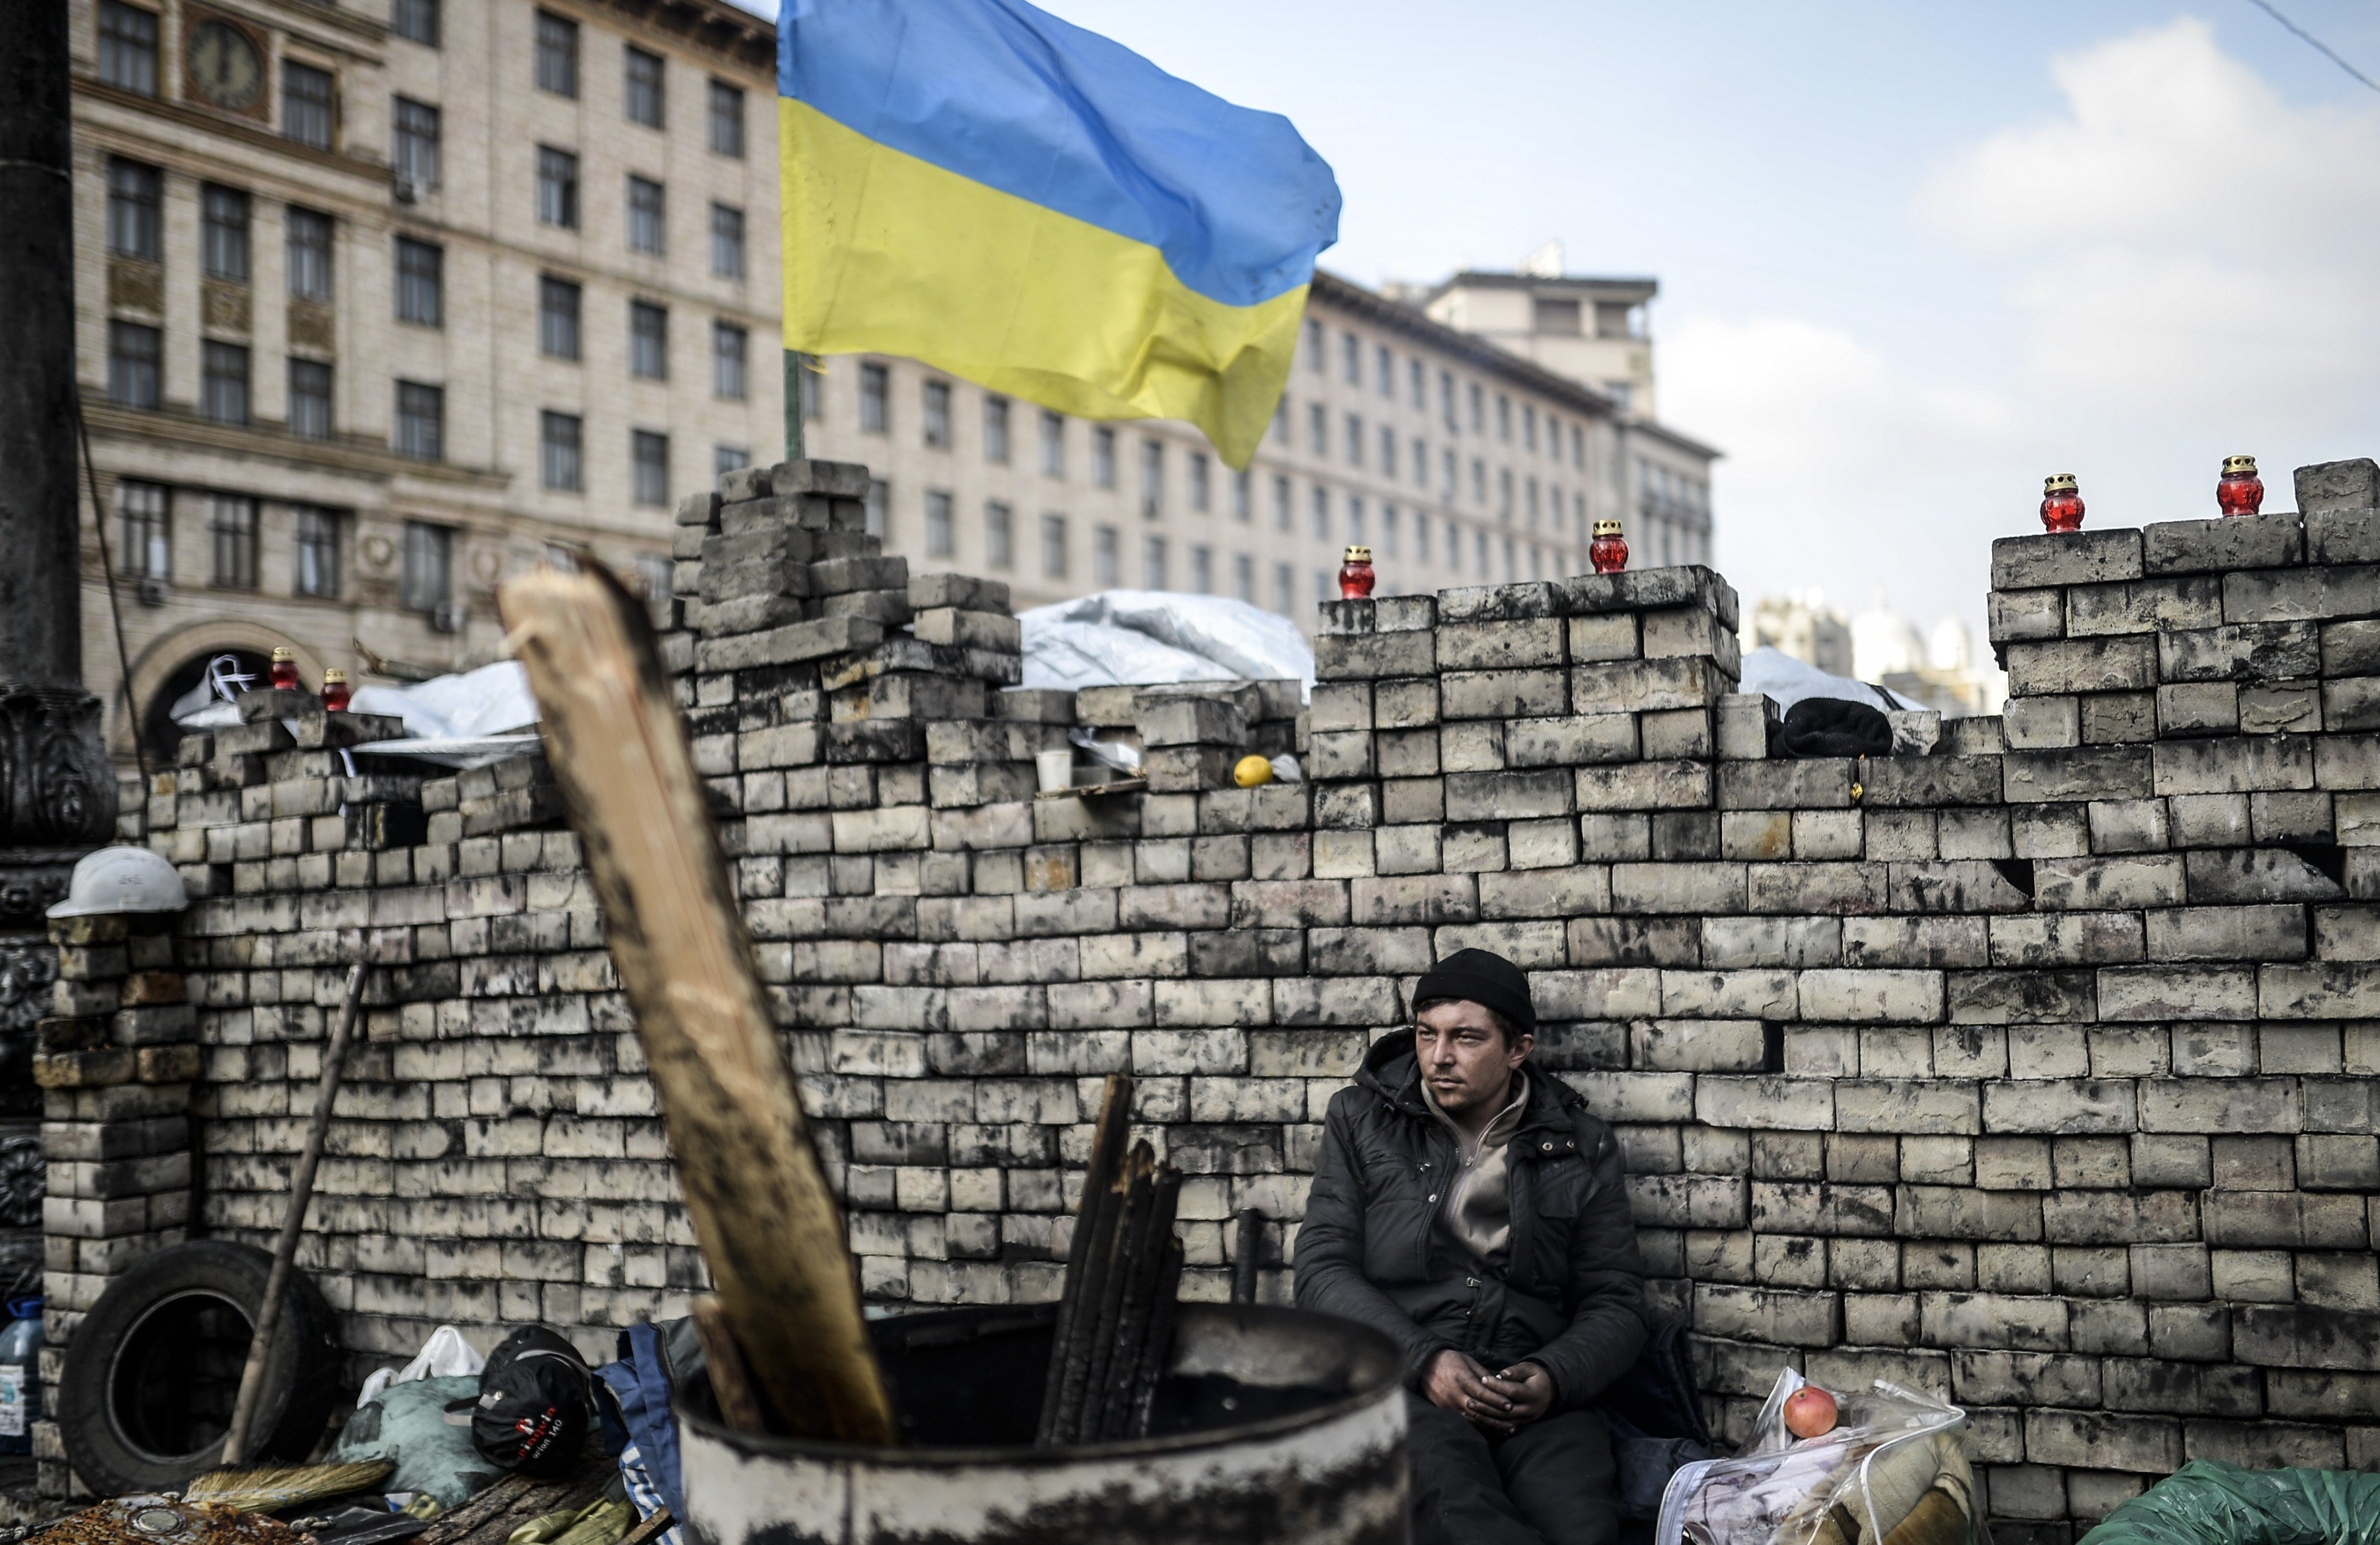 An antigovernment protester sits behind a barricade on Kiev's Independence Square on Feb. 24, 2014